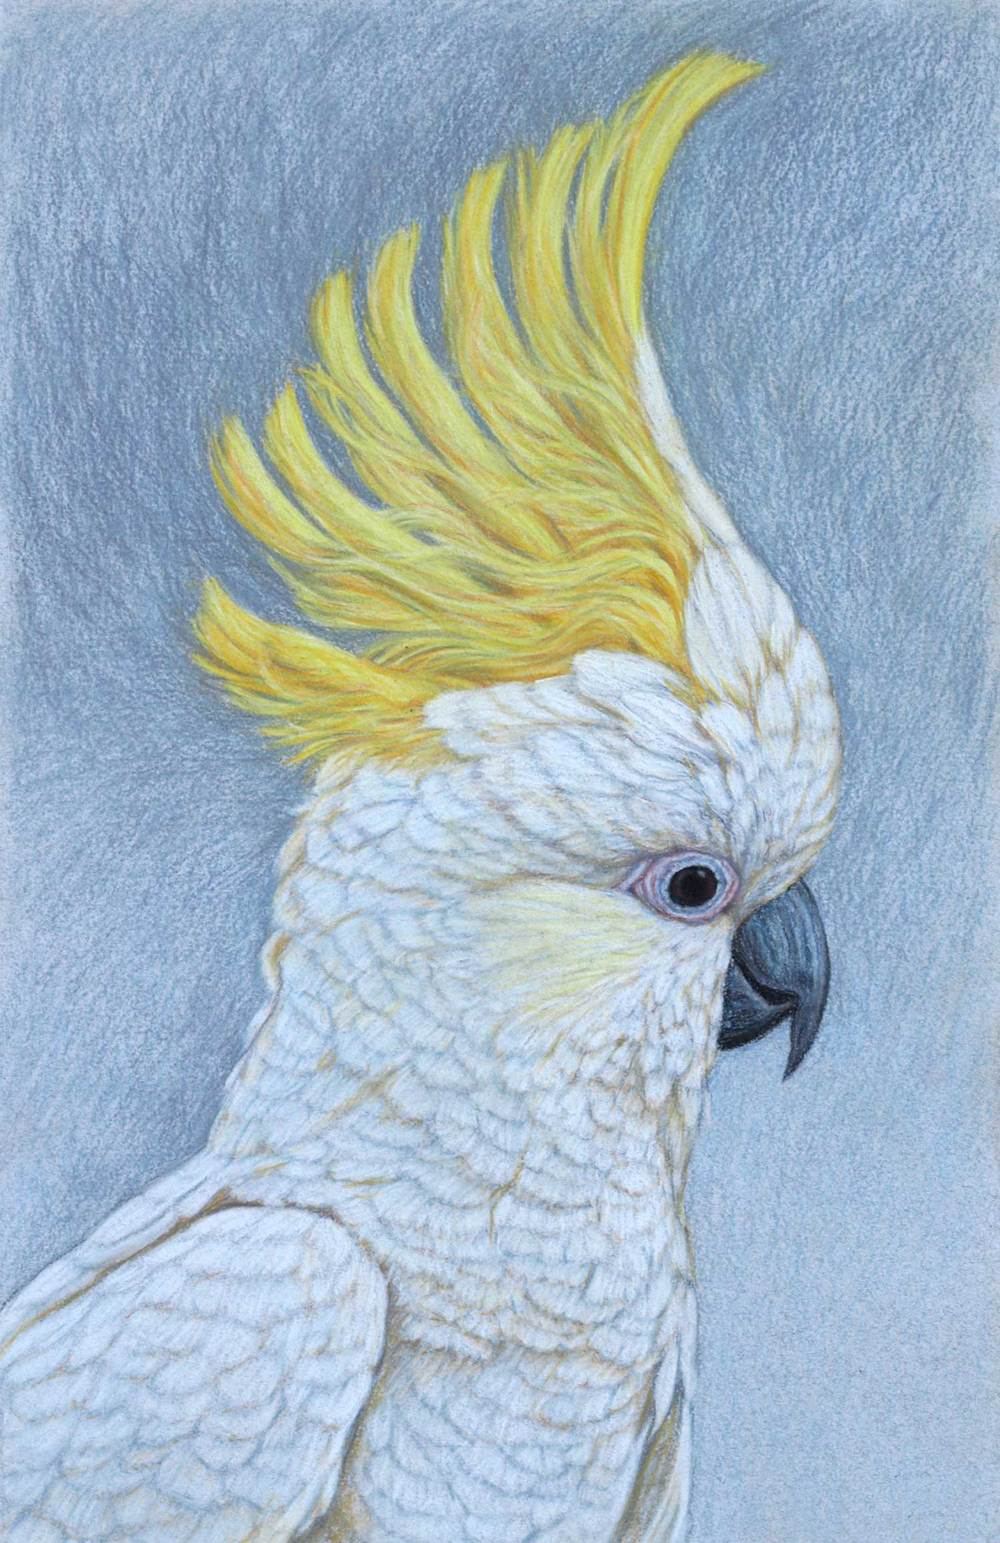 sulphur-crested-cockatoo-3-drawing-rachel-newling.jpg